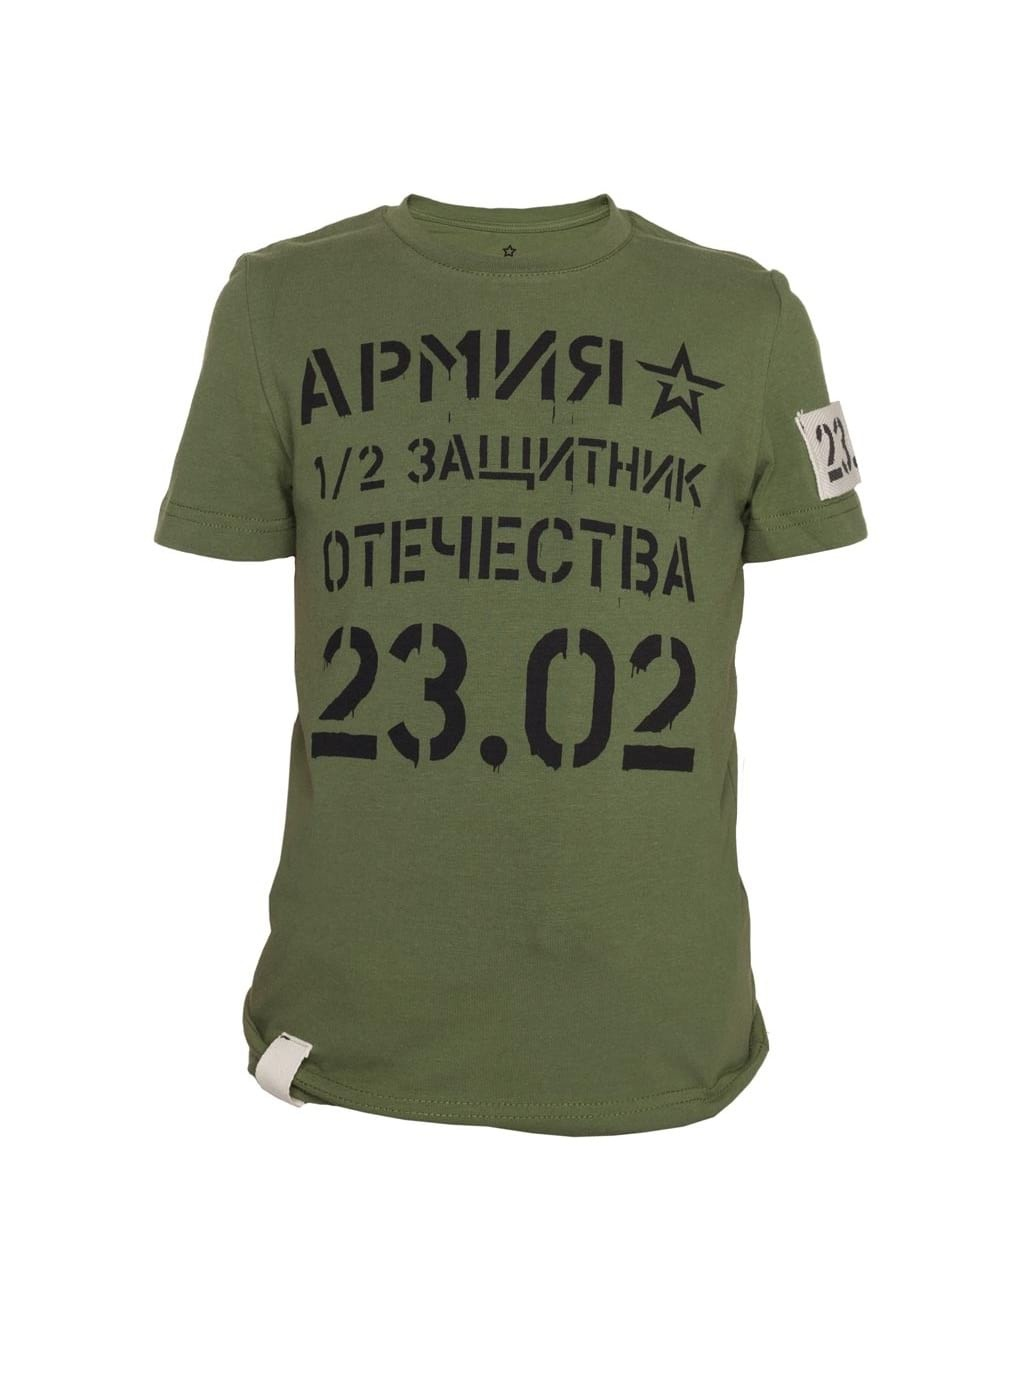 "T-Shirt ""1/2 Defender of the Fatherland""Футболки/Поло<br>Serial collection T-shirt.<br>Intended for growing up men.<br>Perfect Defender of the fatherland day gift for little man.<br>ANY SIZE AND ANY AMOUNT ORDER IS POSSIBLE WITH HELP OFOUR SUPPORT CHAT OPERATORS!<br><br>Цвет: Хаки<br>Размер: 128<br>Пол: Детям"